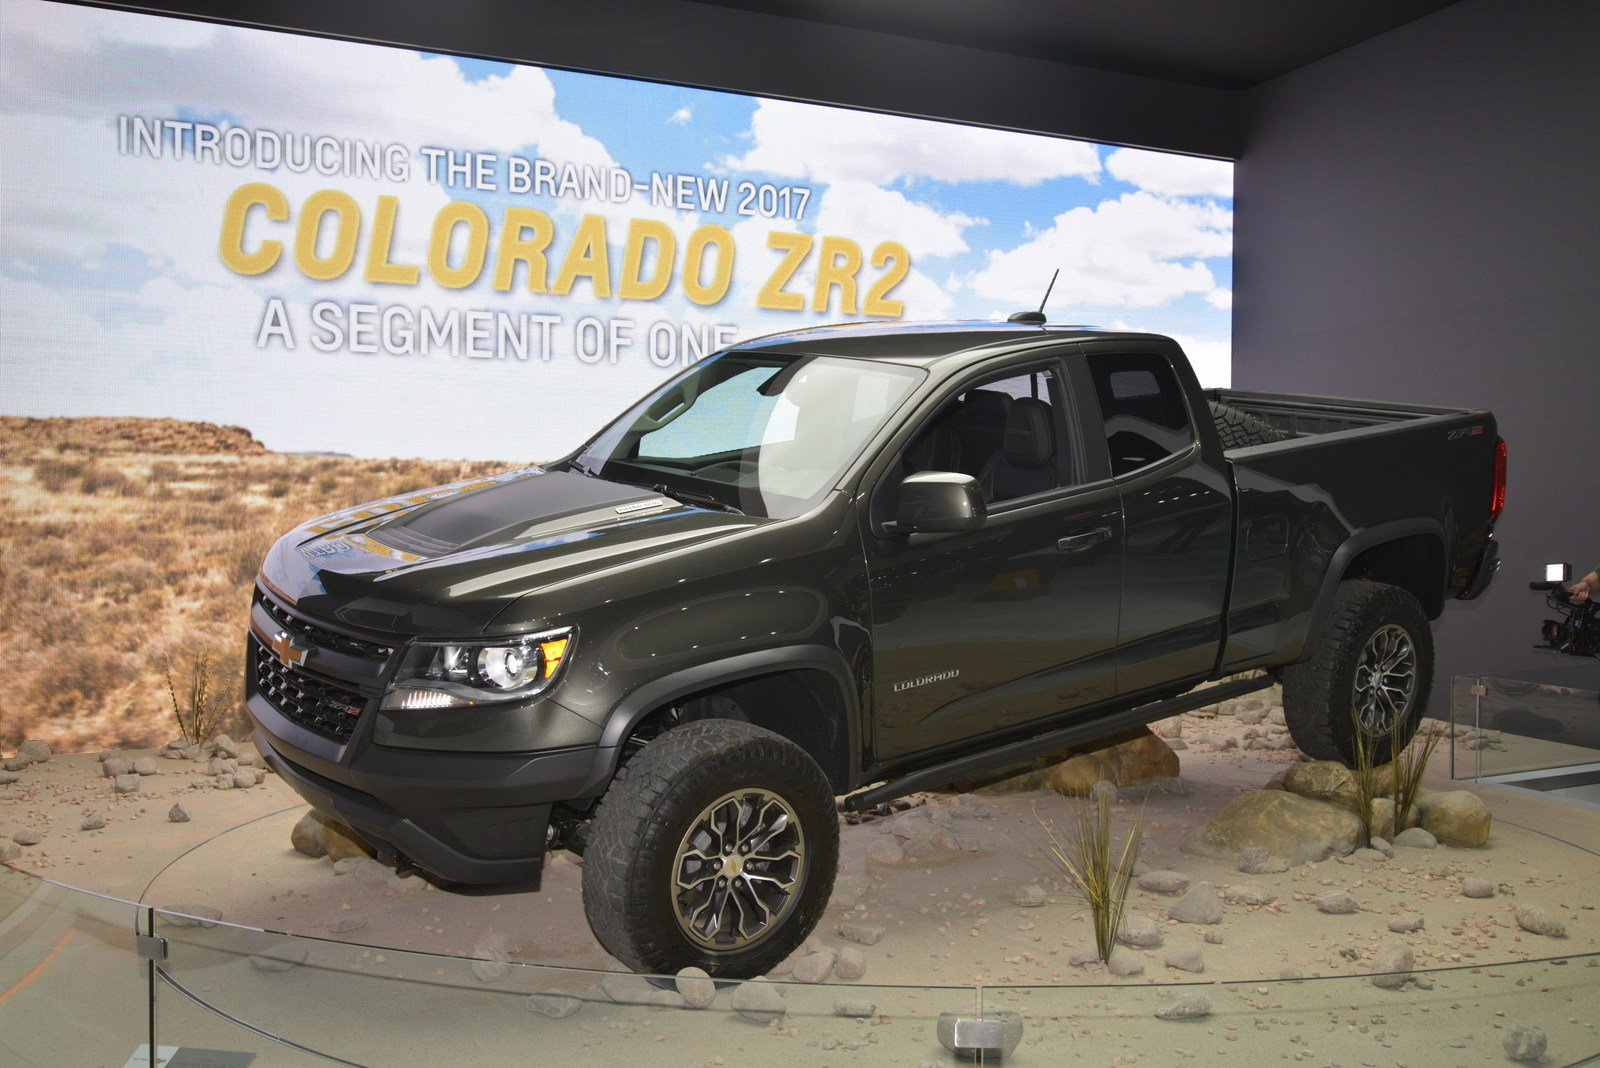 New 2017 Chevrolet Colorado ZR2  Picture 696478  Truck Review  Top